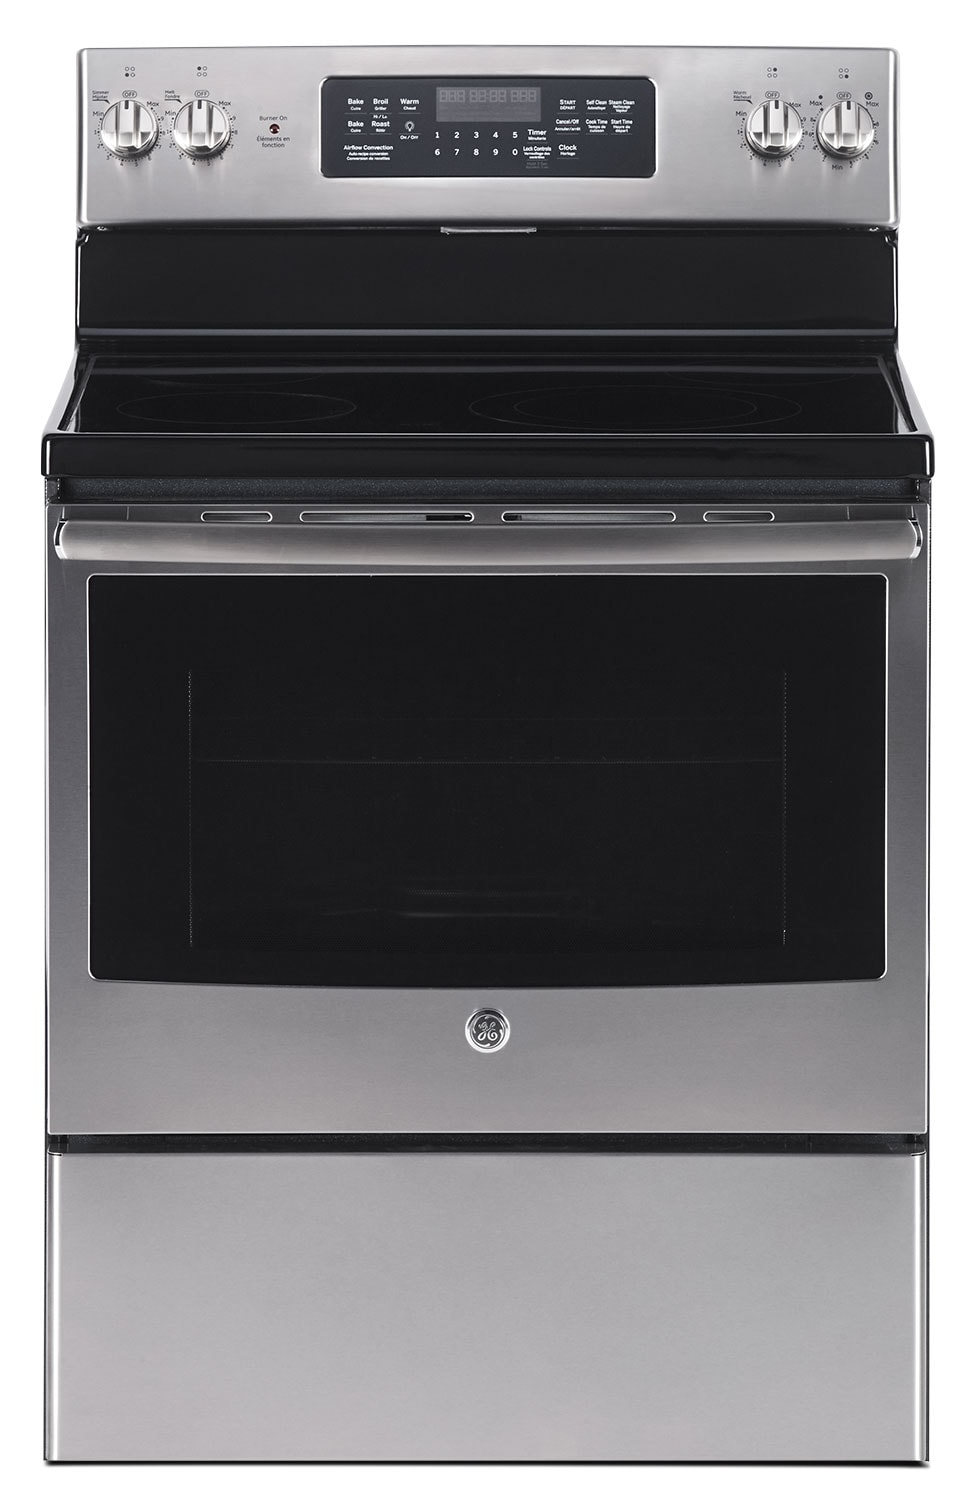 Cooking Products - GE 5.0 Cu. Ft. Freestanding Electric Range – JCB830SKSS